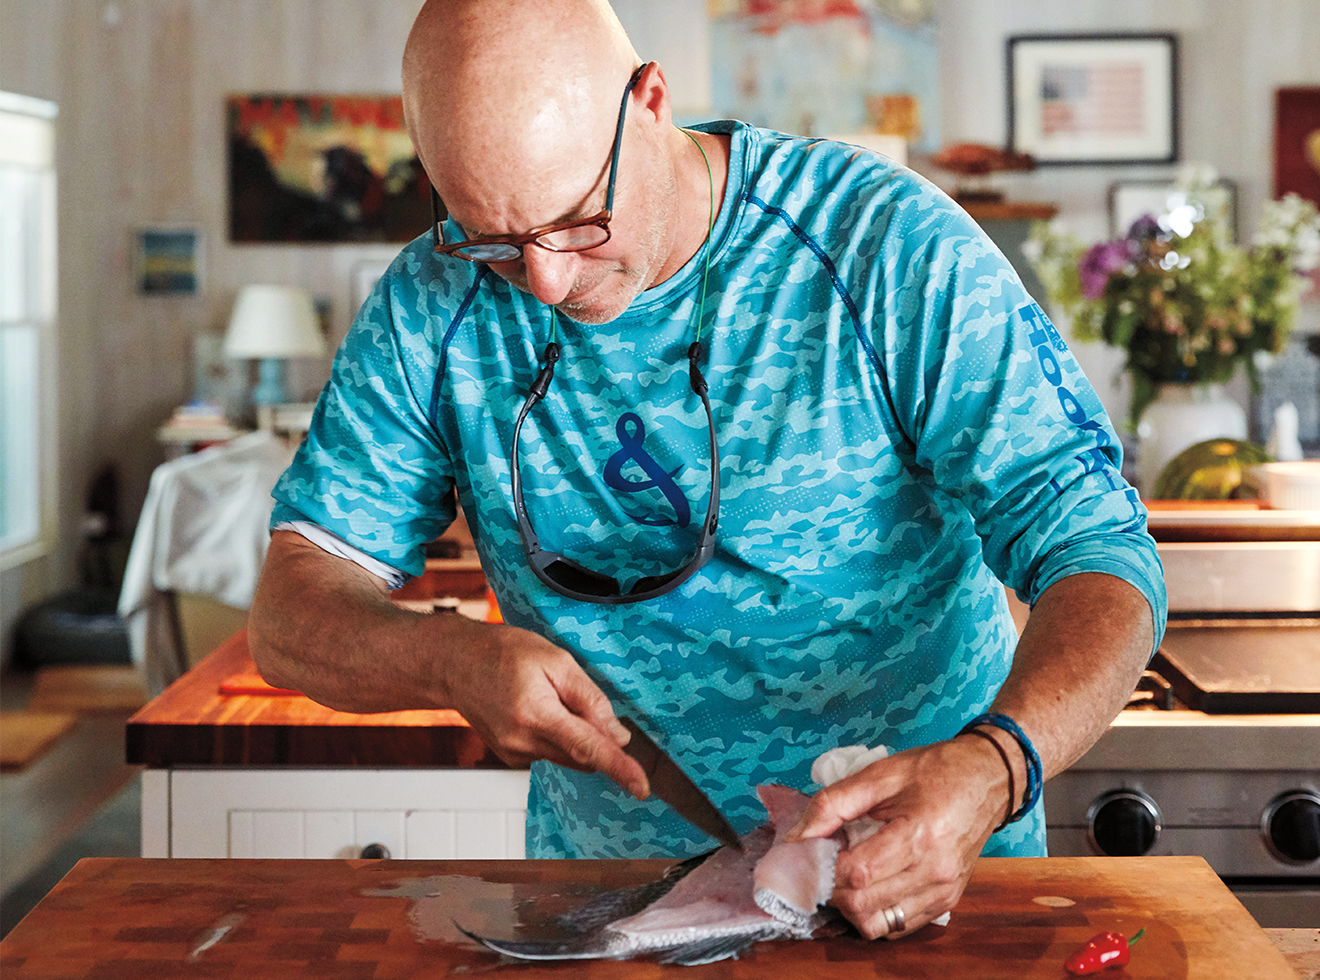 Colicchio, in his kitchen, filleting a black sea bass he caught that morning.